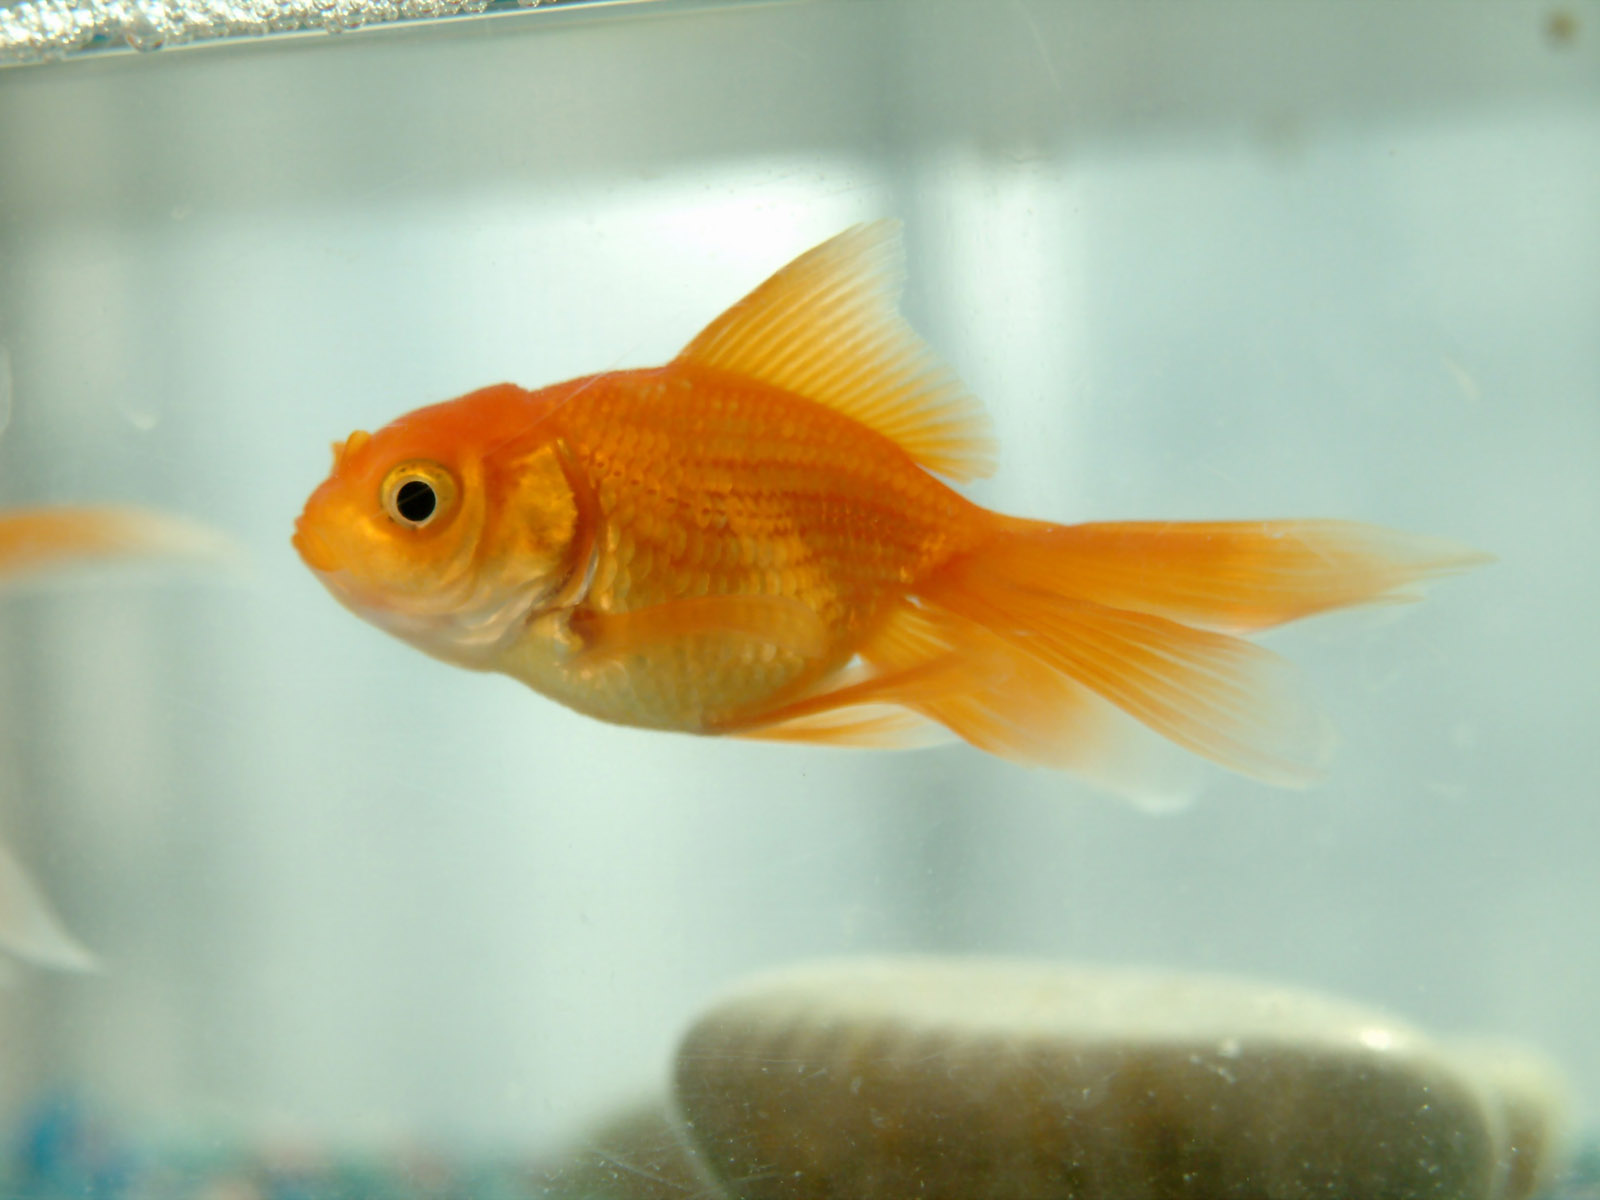 goldfish high quality wallpapers he gold fish wallpapers nice goldfish 1600x1200